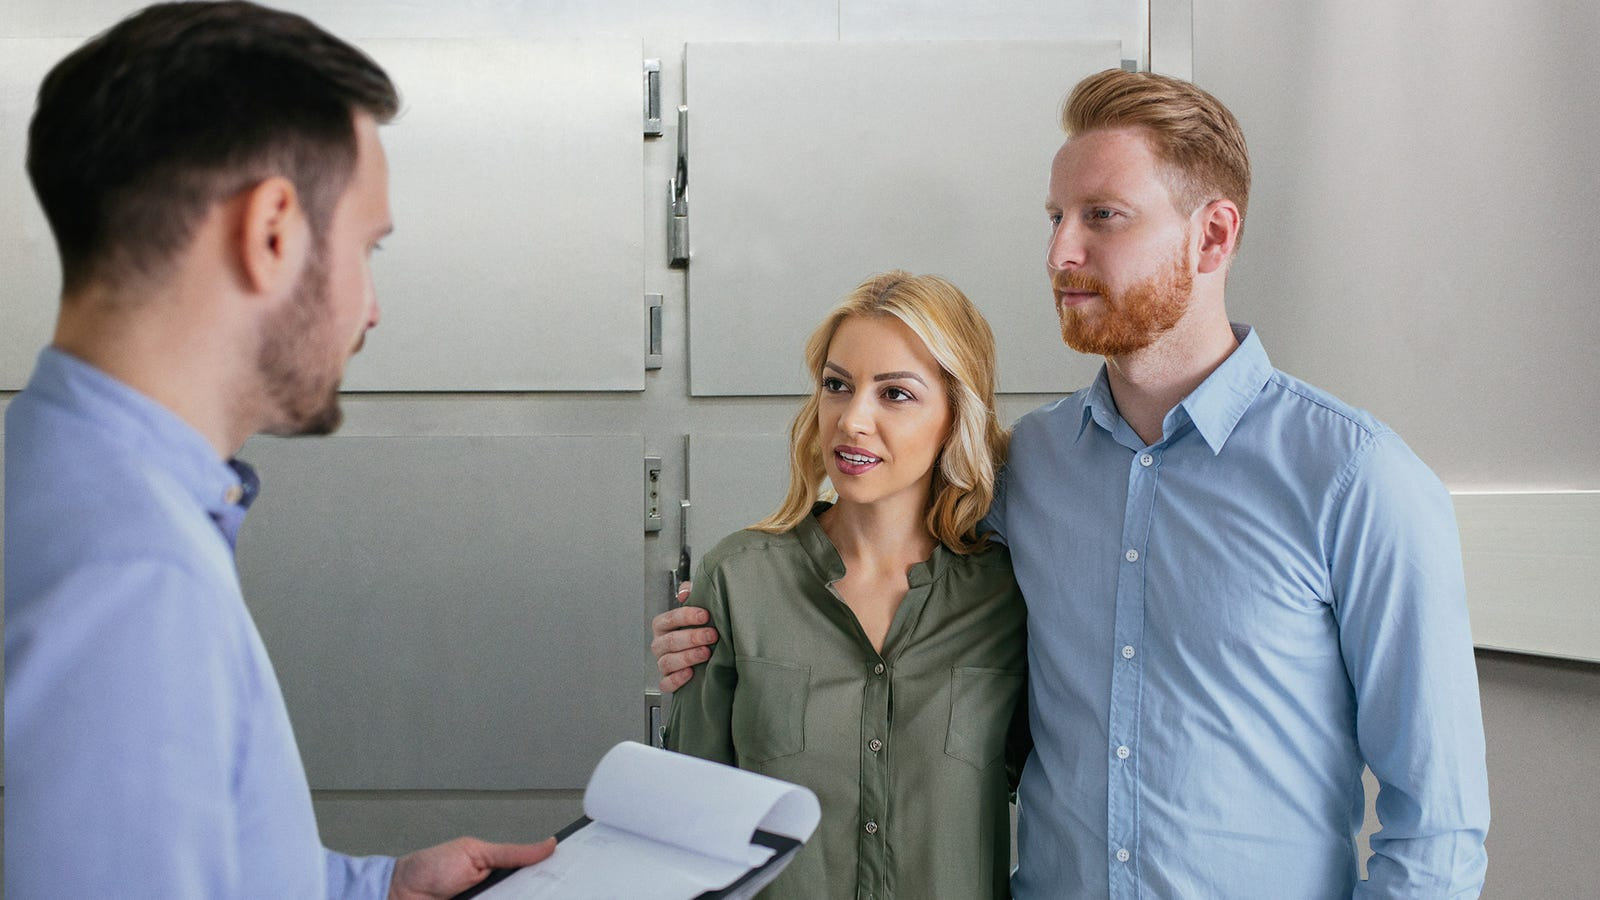 Sperm Bank Manager Takes Wealthy Couple To Secret Back Freezer Where The Real Good Stuff Is Stored